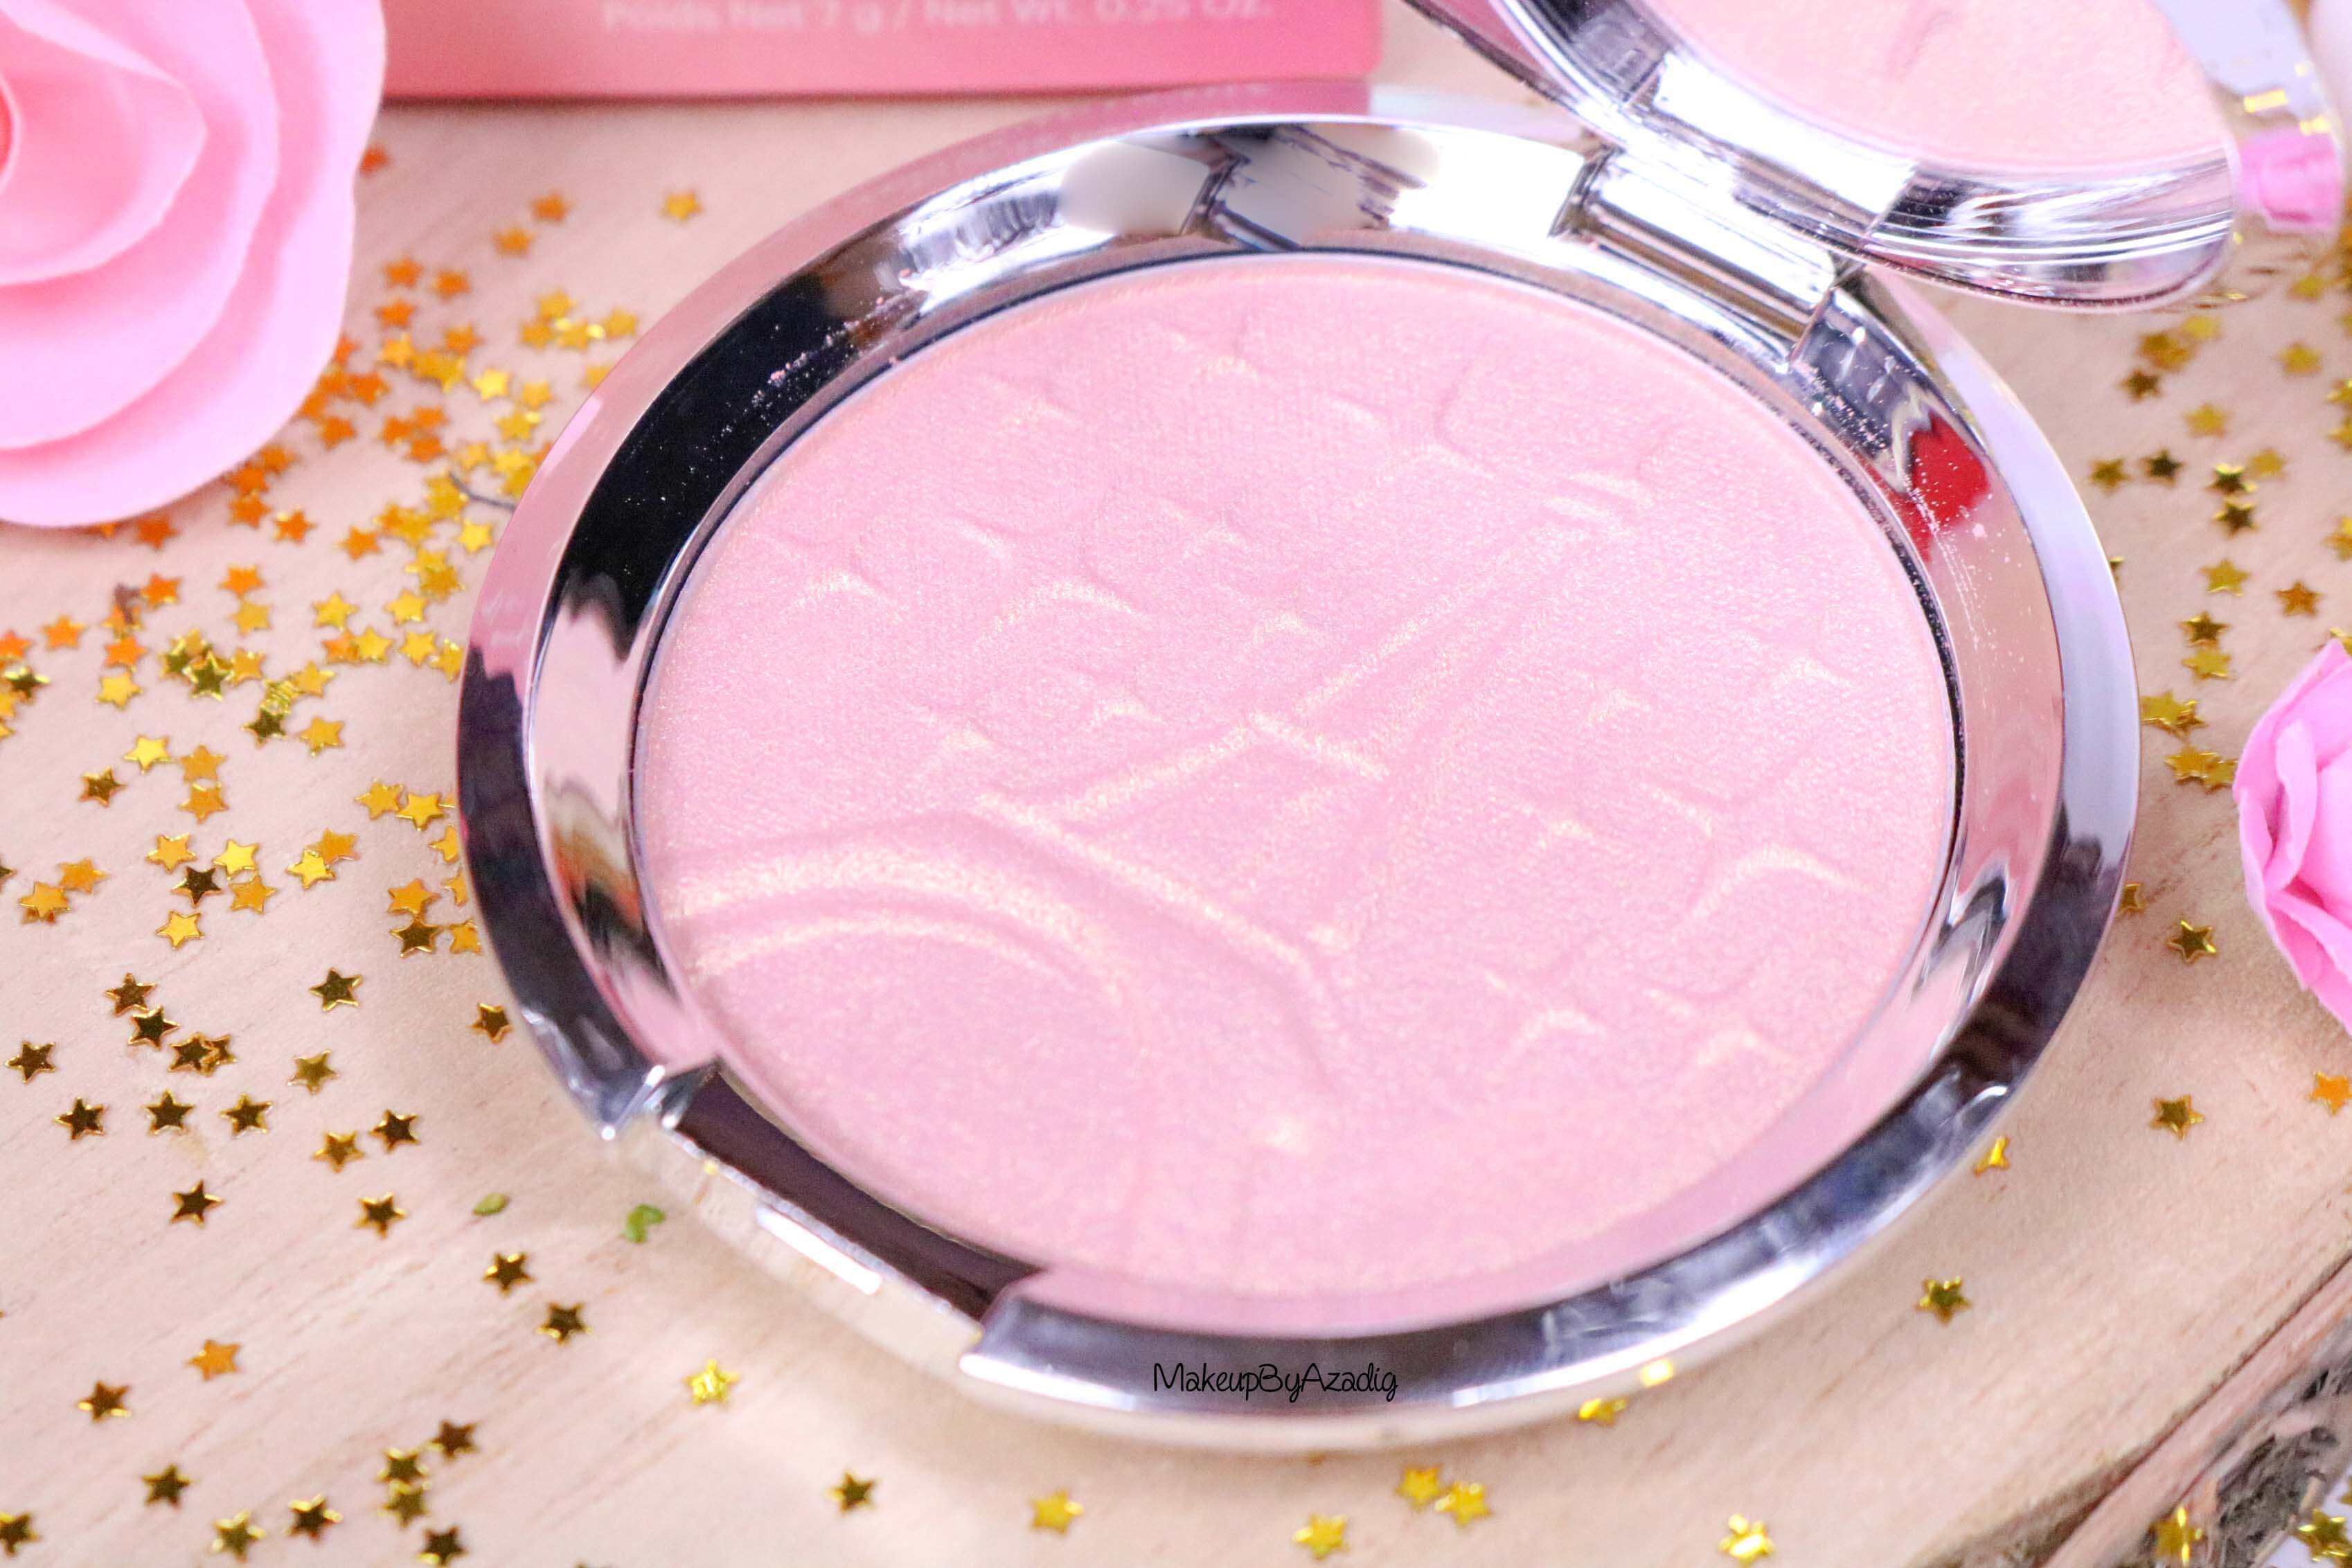 revue-highlighter-becca-sananas-parisian-lights-prix-avis-swatch-beccaxsananas-paris-youtuber-enlumineur